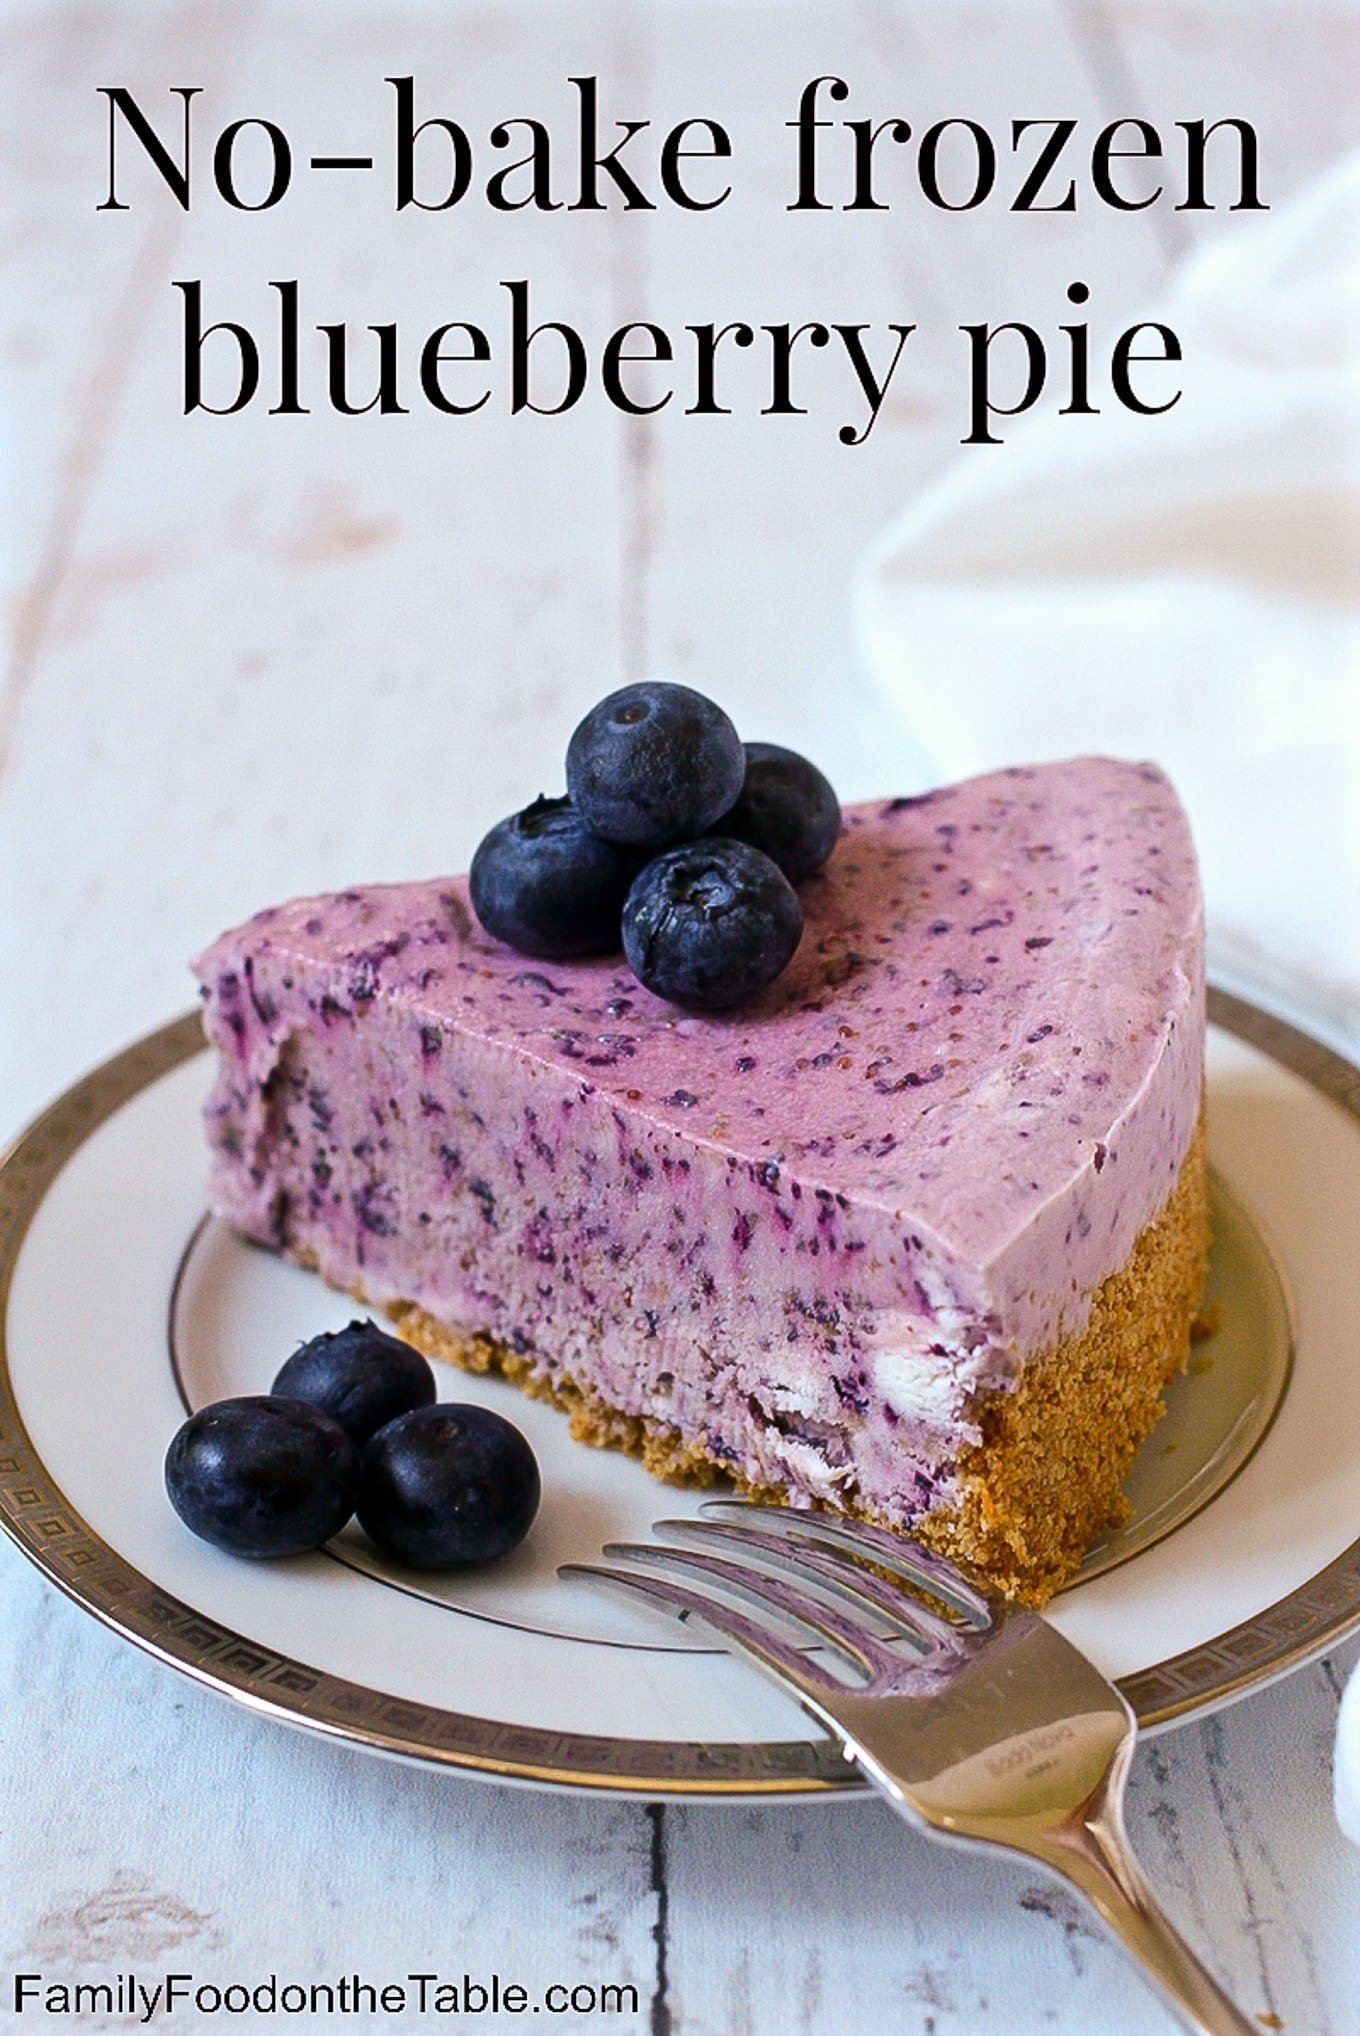 Frozen-blueberry-pie-edited-3